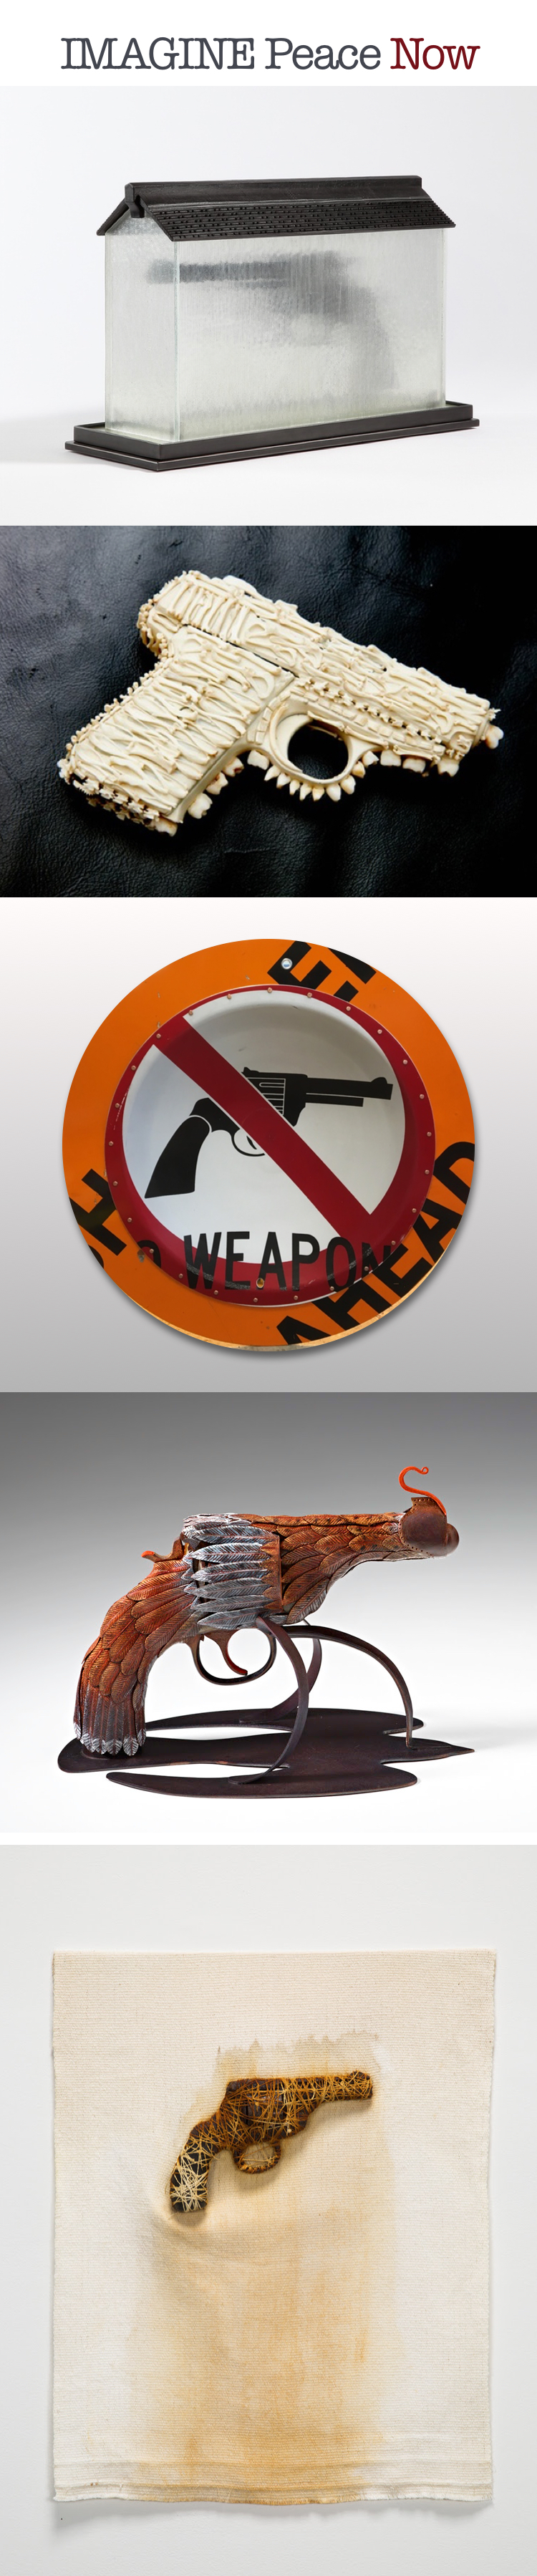 "The "" IMAGINE Peace Now "" exhibition opens November 2016 with 100+ works of compelling, peace-themed artworks made from decommissioned firearms. Organized by Outdoorz Gallery artist   Boris Bally,   the exhibition is an attempt by artists to call an end to gun violence, an action we wholeheartedly support. The exhibition opens this November at the  Wellington B. Gray Gallery  at East Carolina University, Greenville, North Carolina and travels to Boston's  Society of Arts & Crafts  in early 2017. The artists are currently running a kickstarter campaign to fund the comprehensive catalogue.  Your support is welcome !"